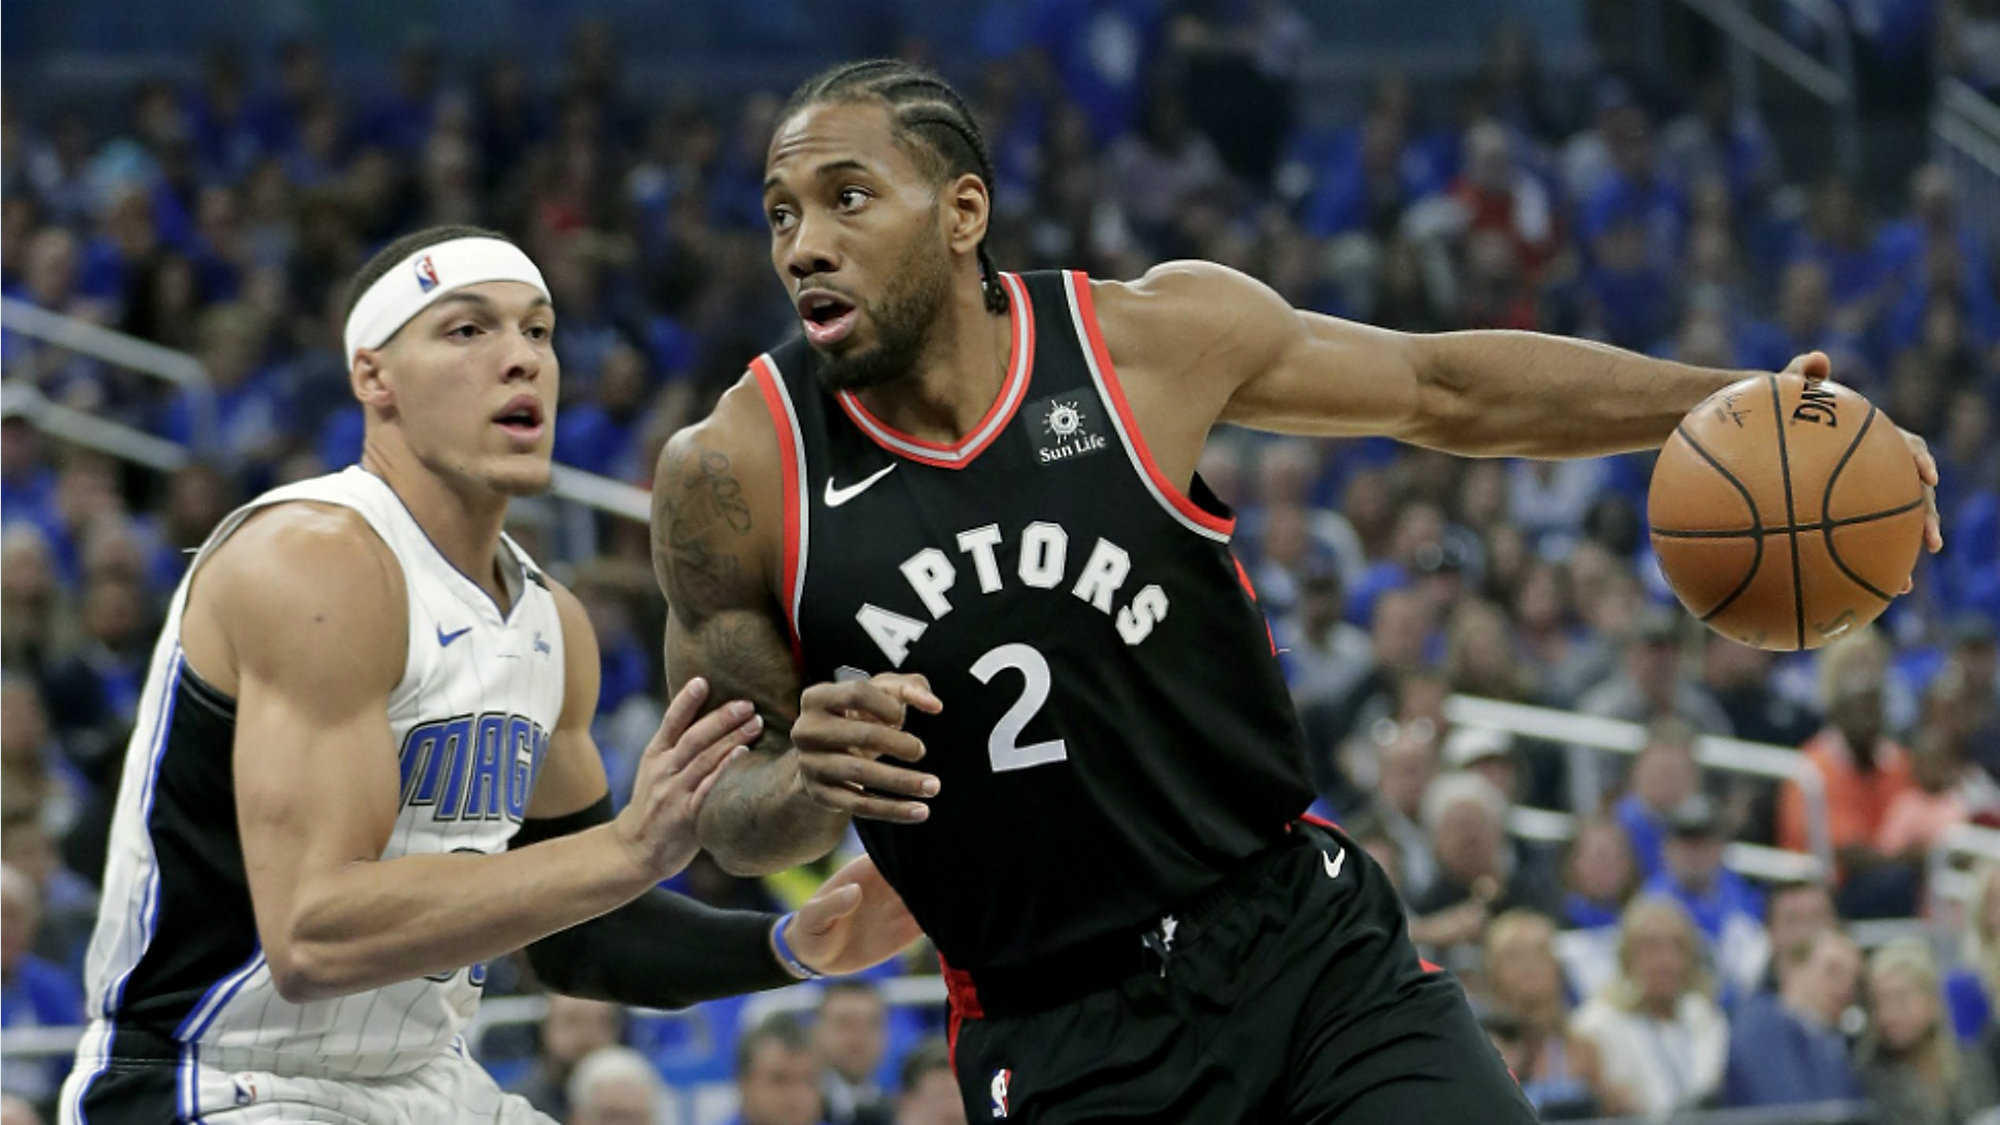 69f618abdbe The Toronto Raptors  Kawhi Leonard (center) drives to the basket against  the Orlando